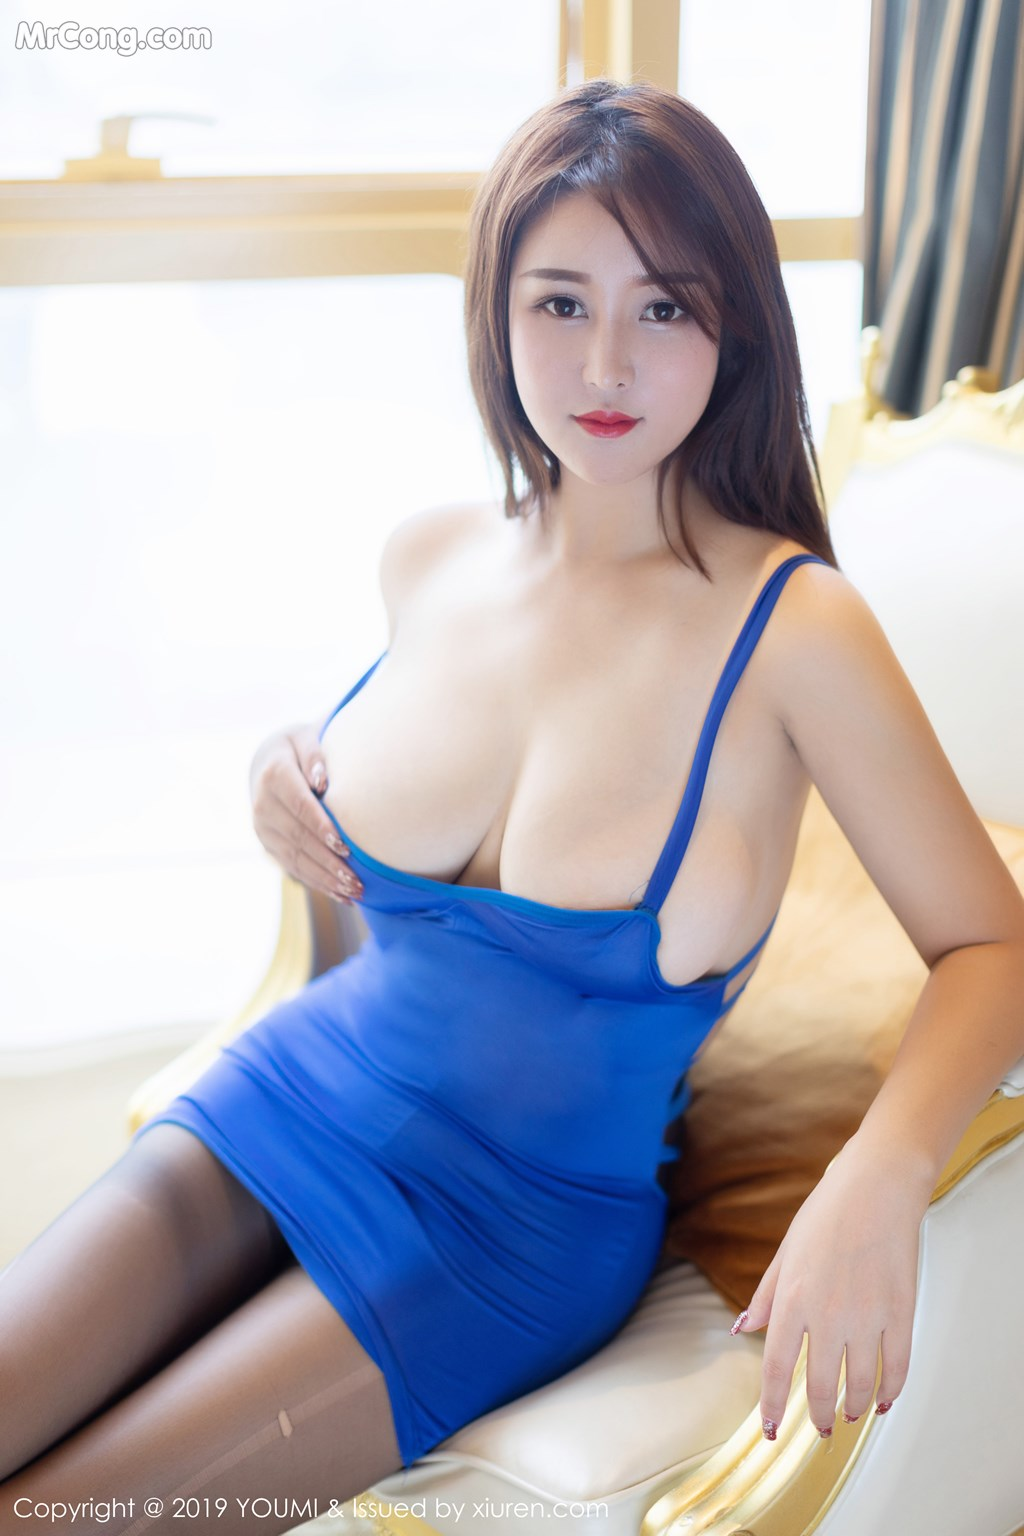 Image YouMi-Vol.341-ber-MrCong.com-003 in post YouMi Vol.341: 潘琳琳ber (56 ảnh)